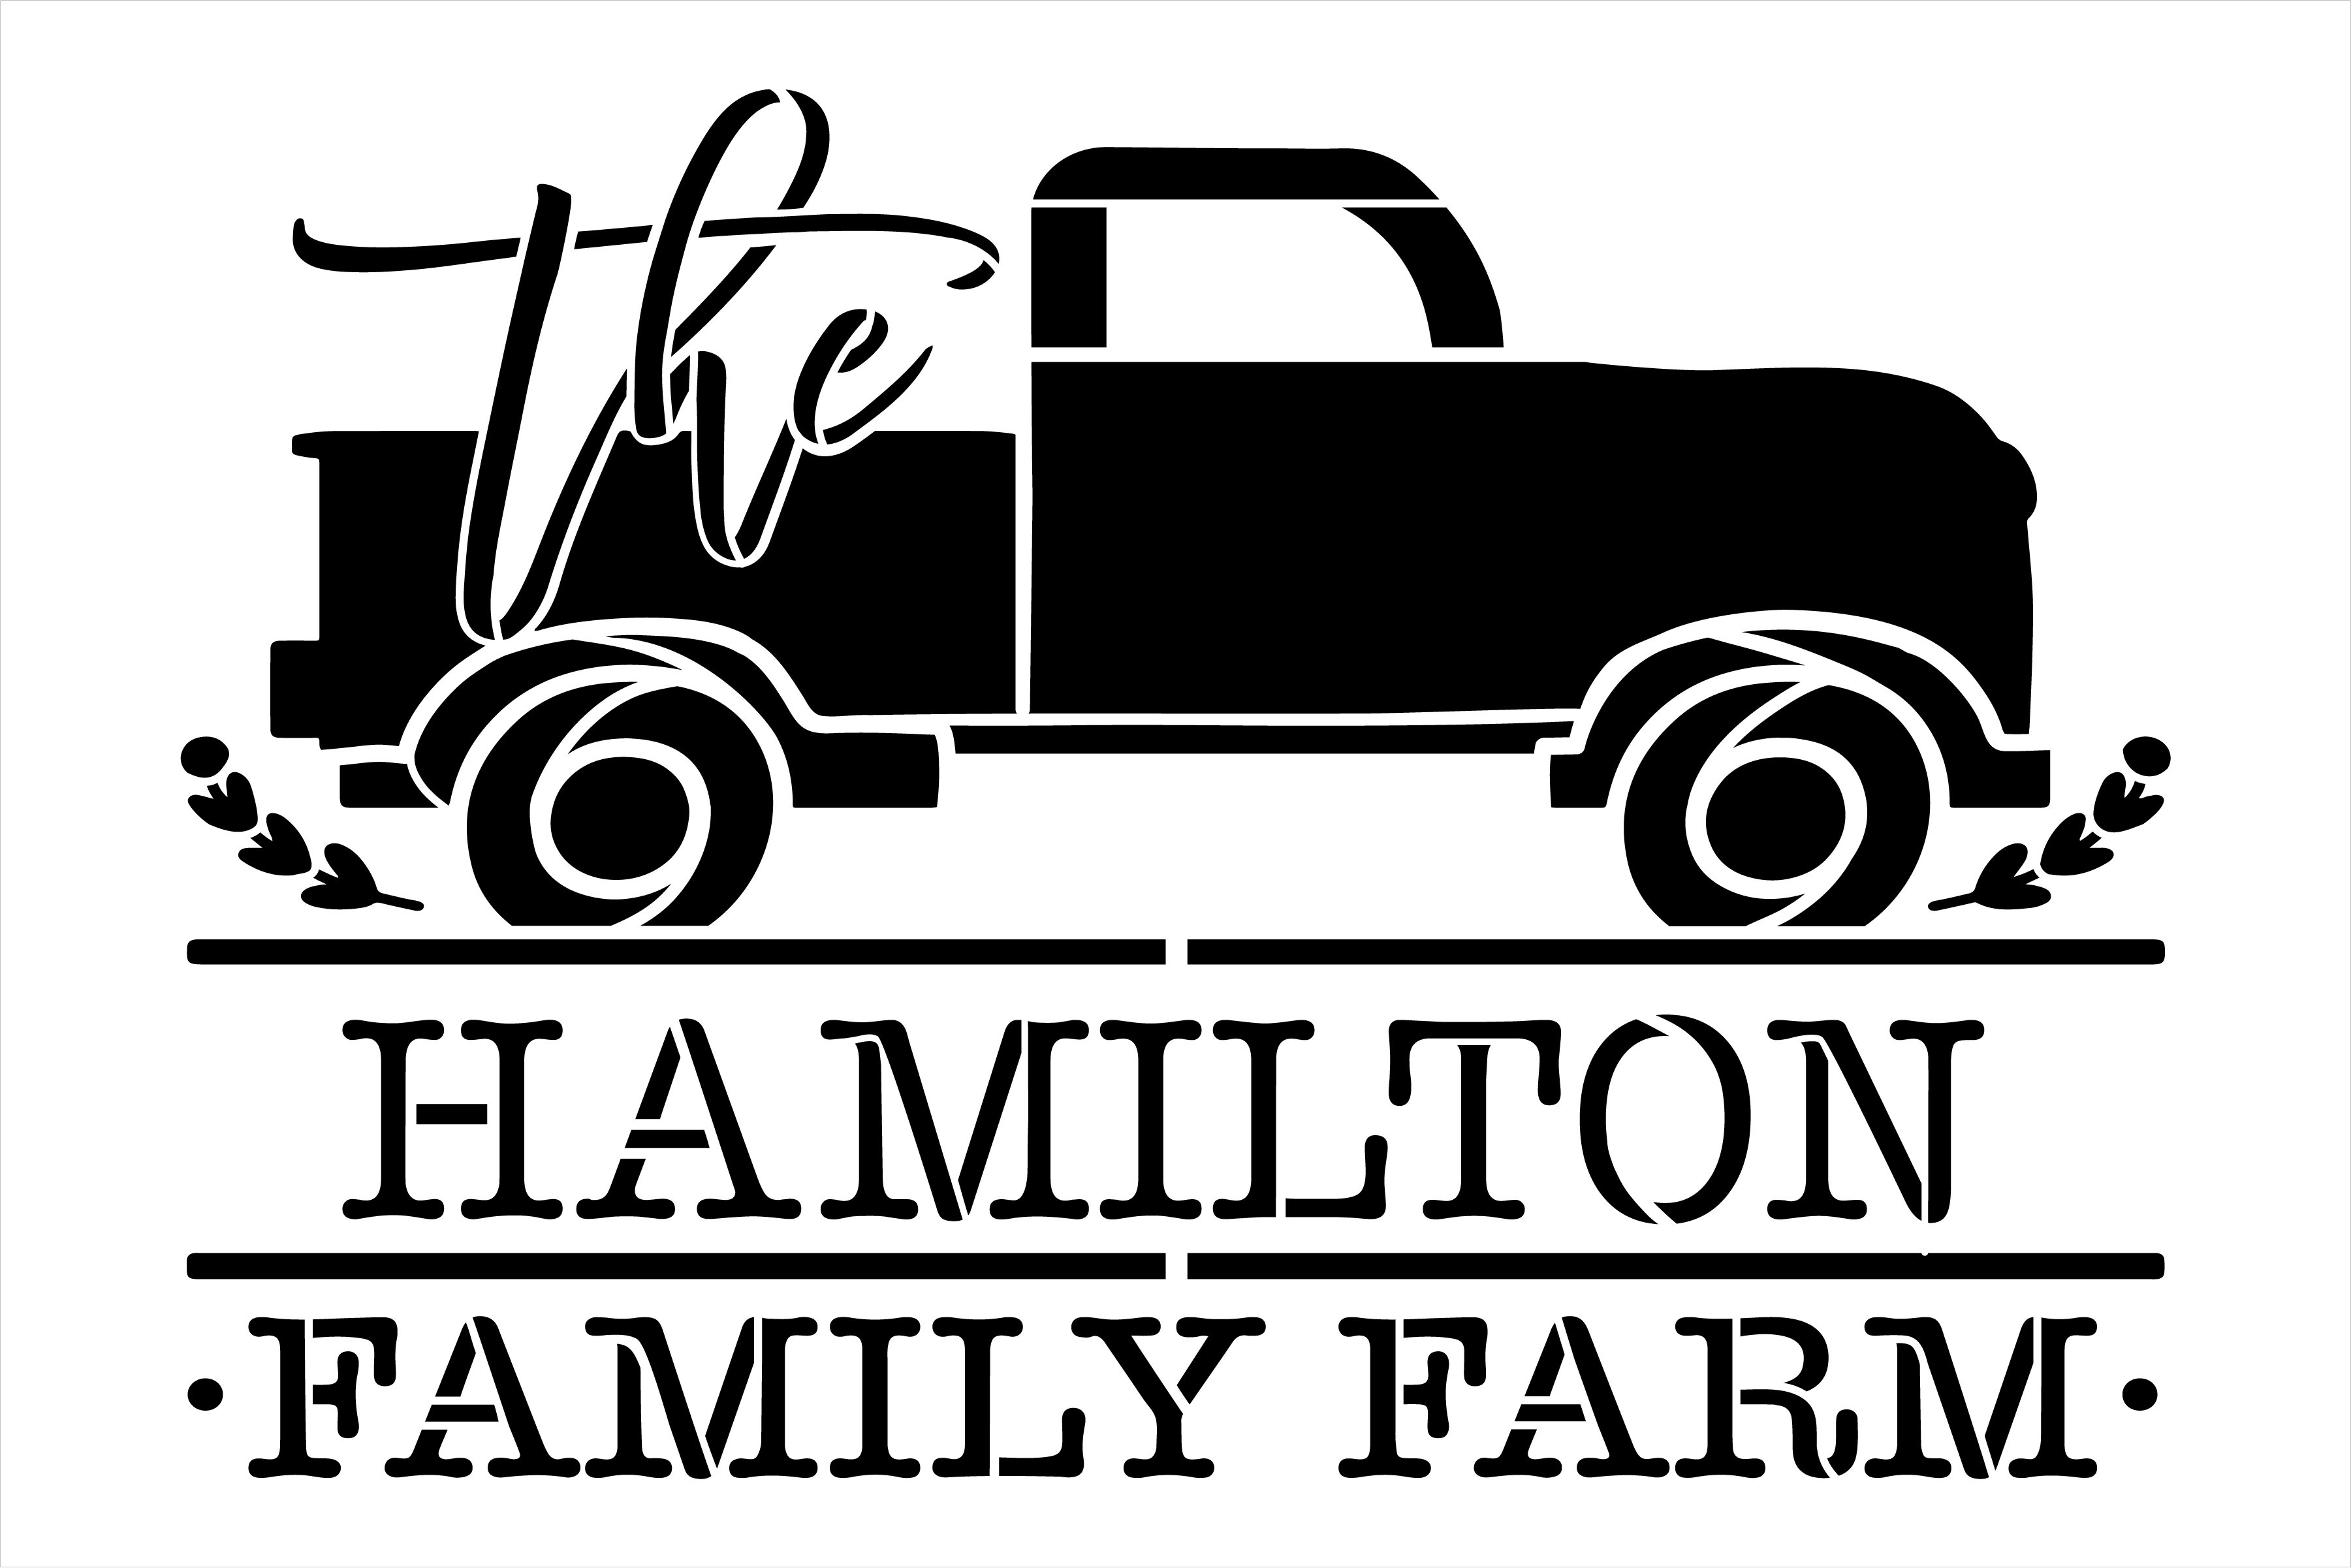 Personalized Family Farm Stencil with Vintage Truck by StudioR12 | DIY Doormat | Craft & Paint Farmhouse Home Decor | Select Size